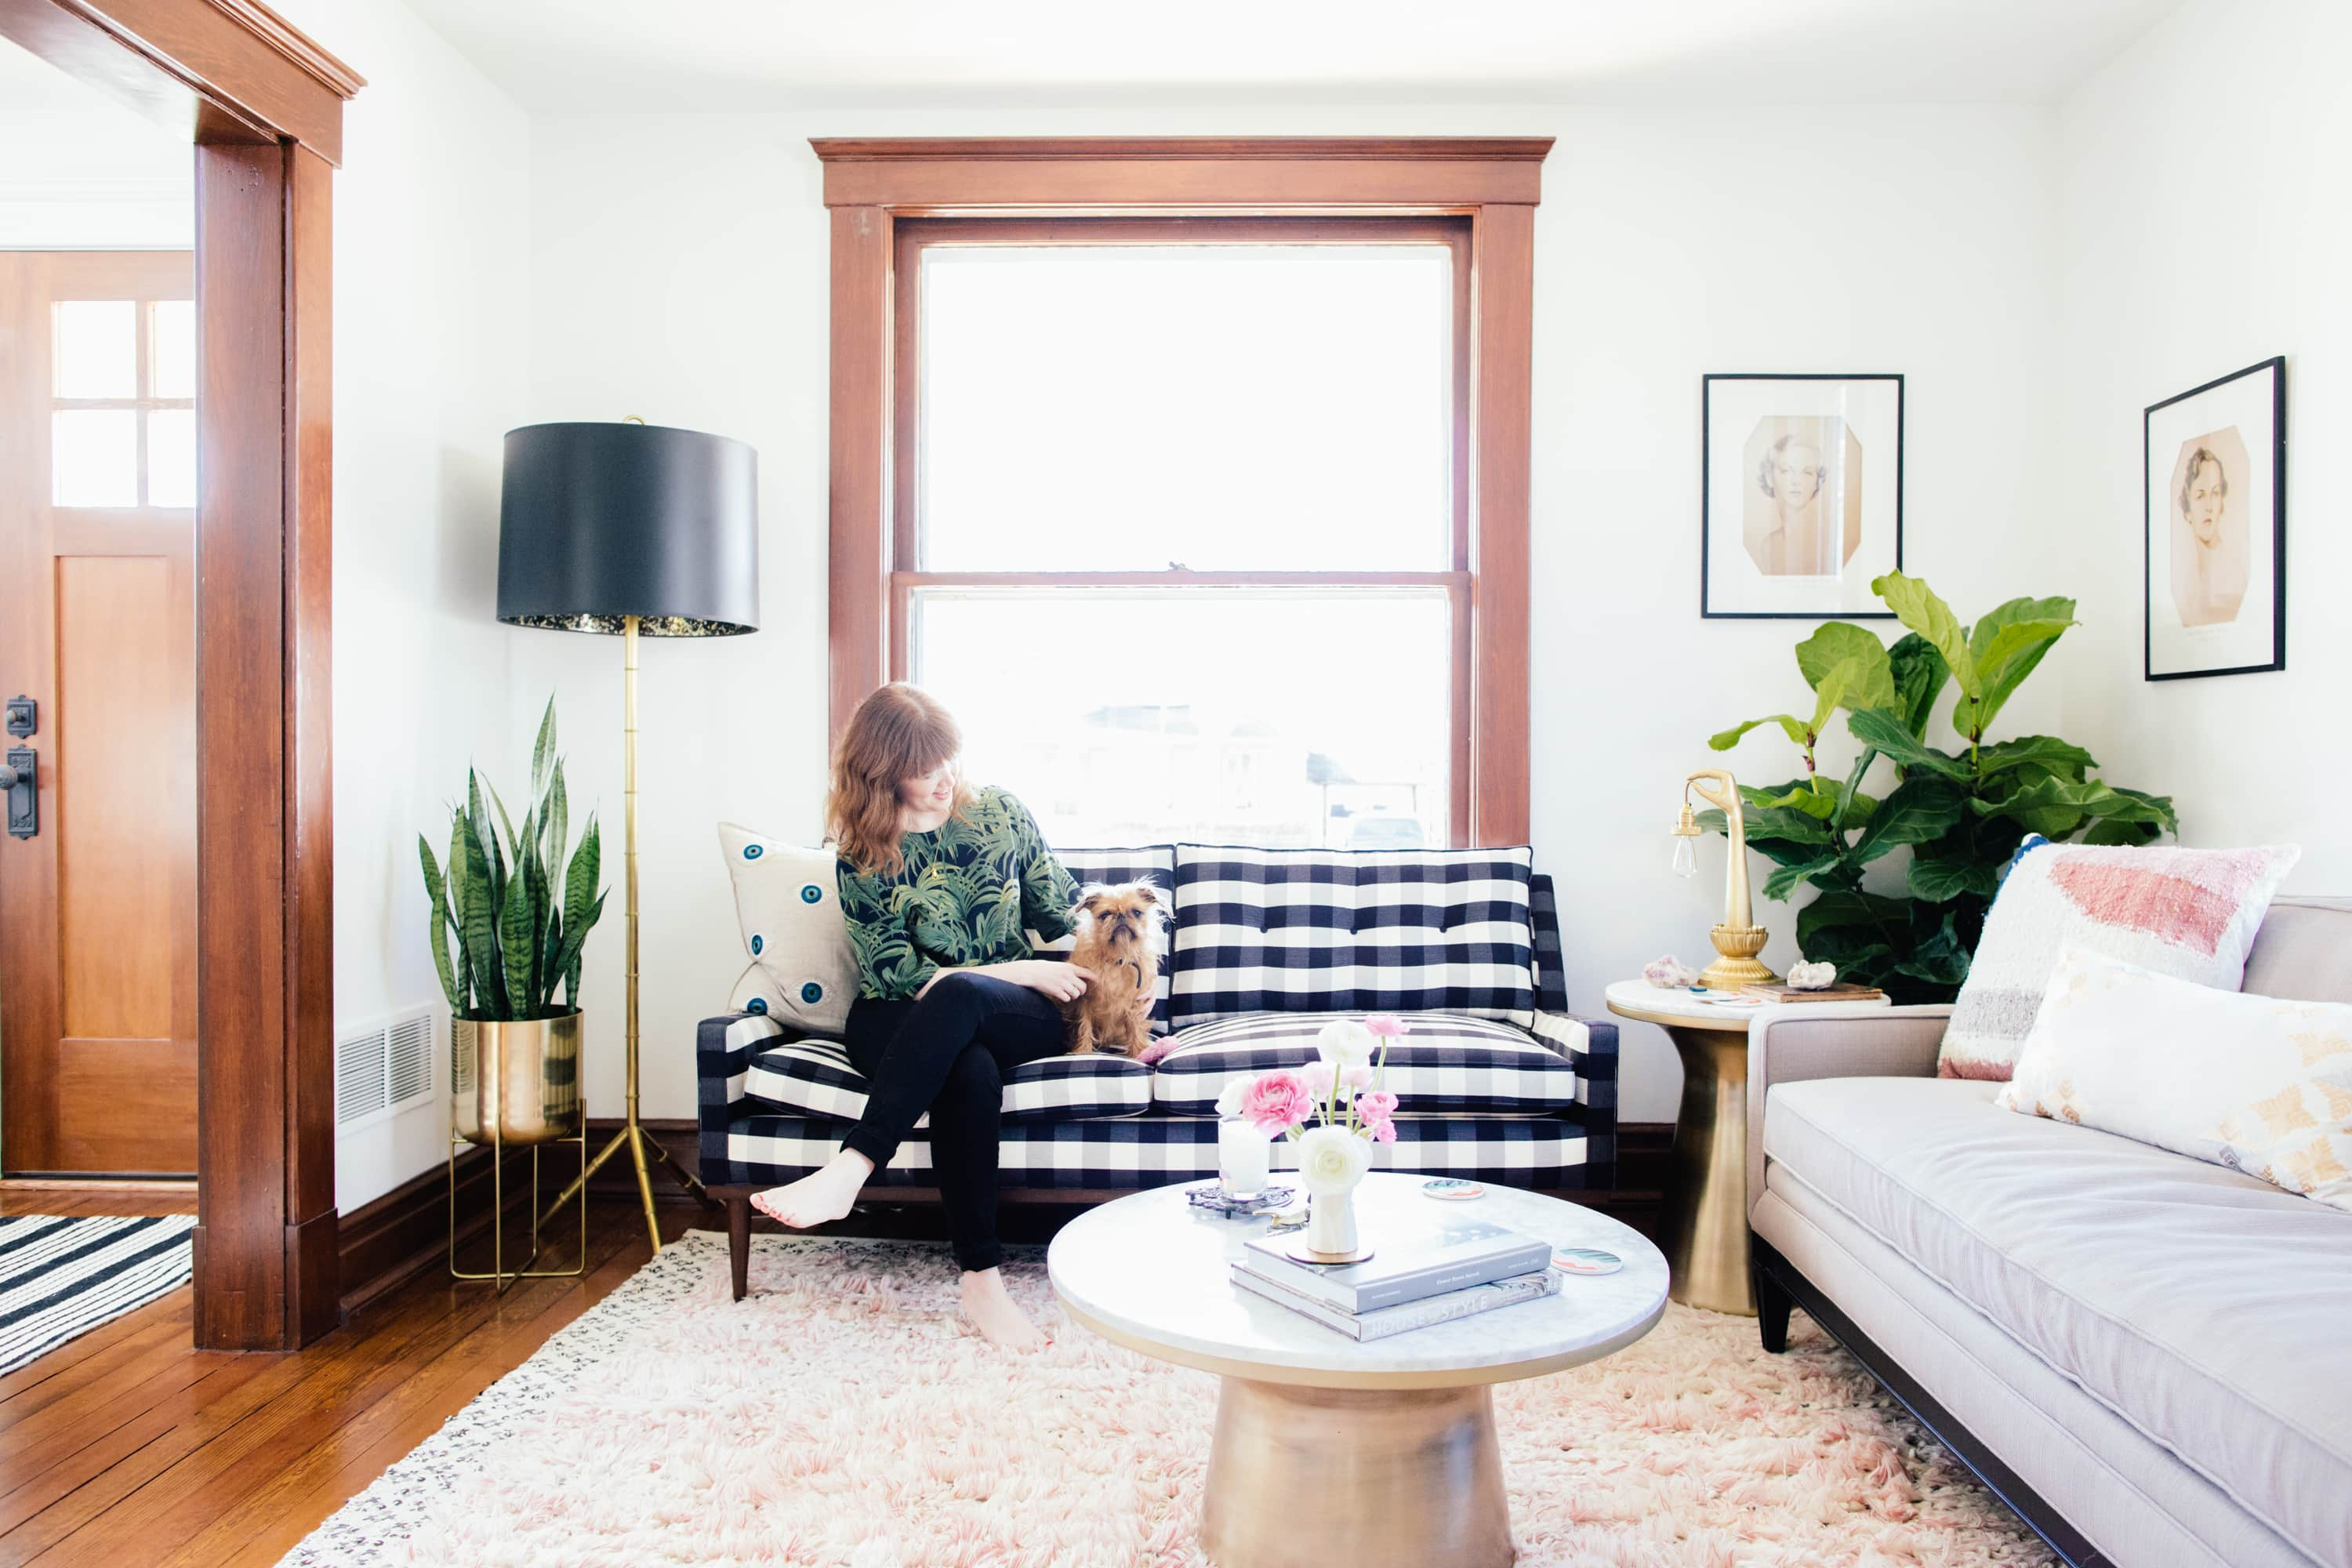 House Tour: A New Yorker Transforms a 1890s Michigan House